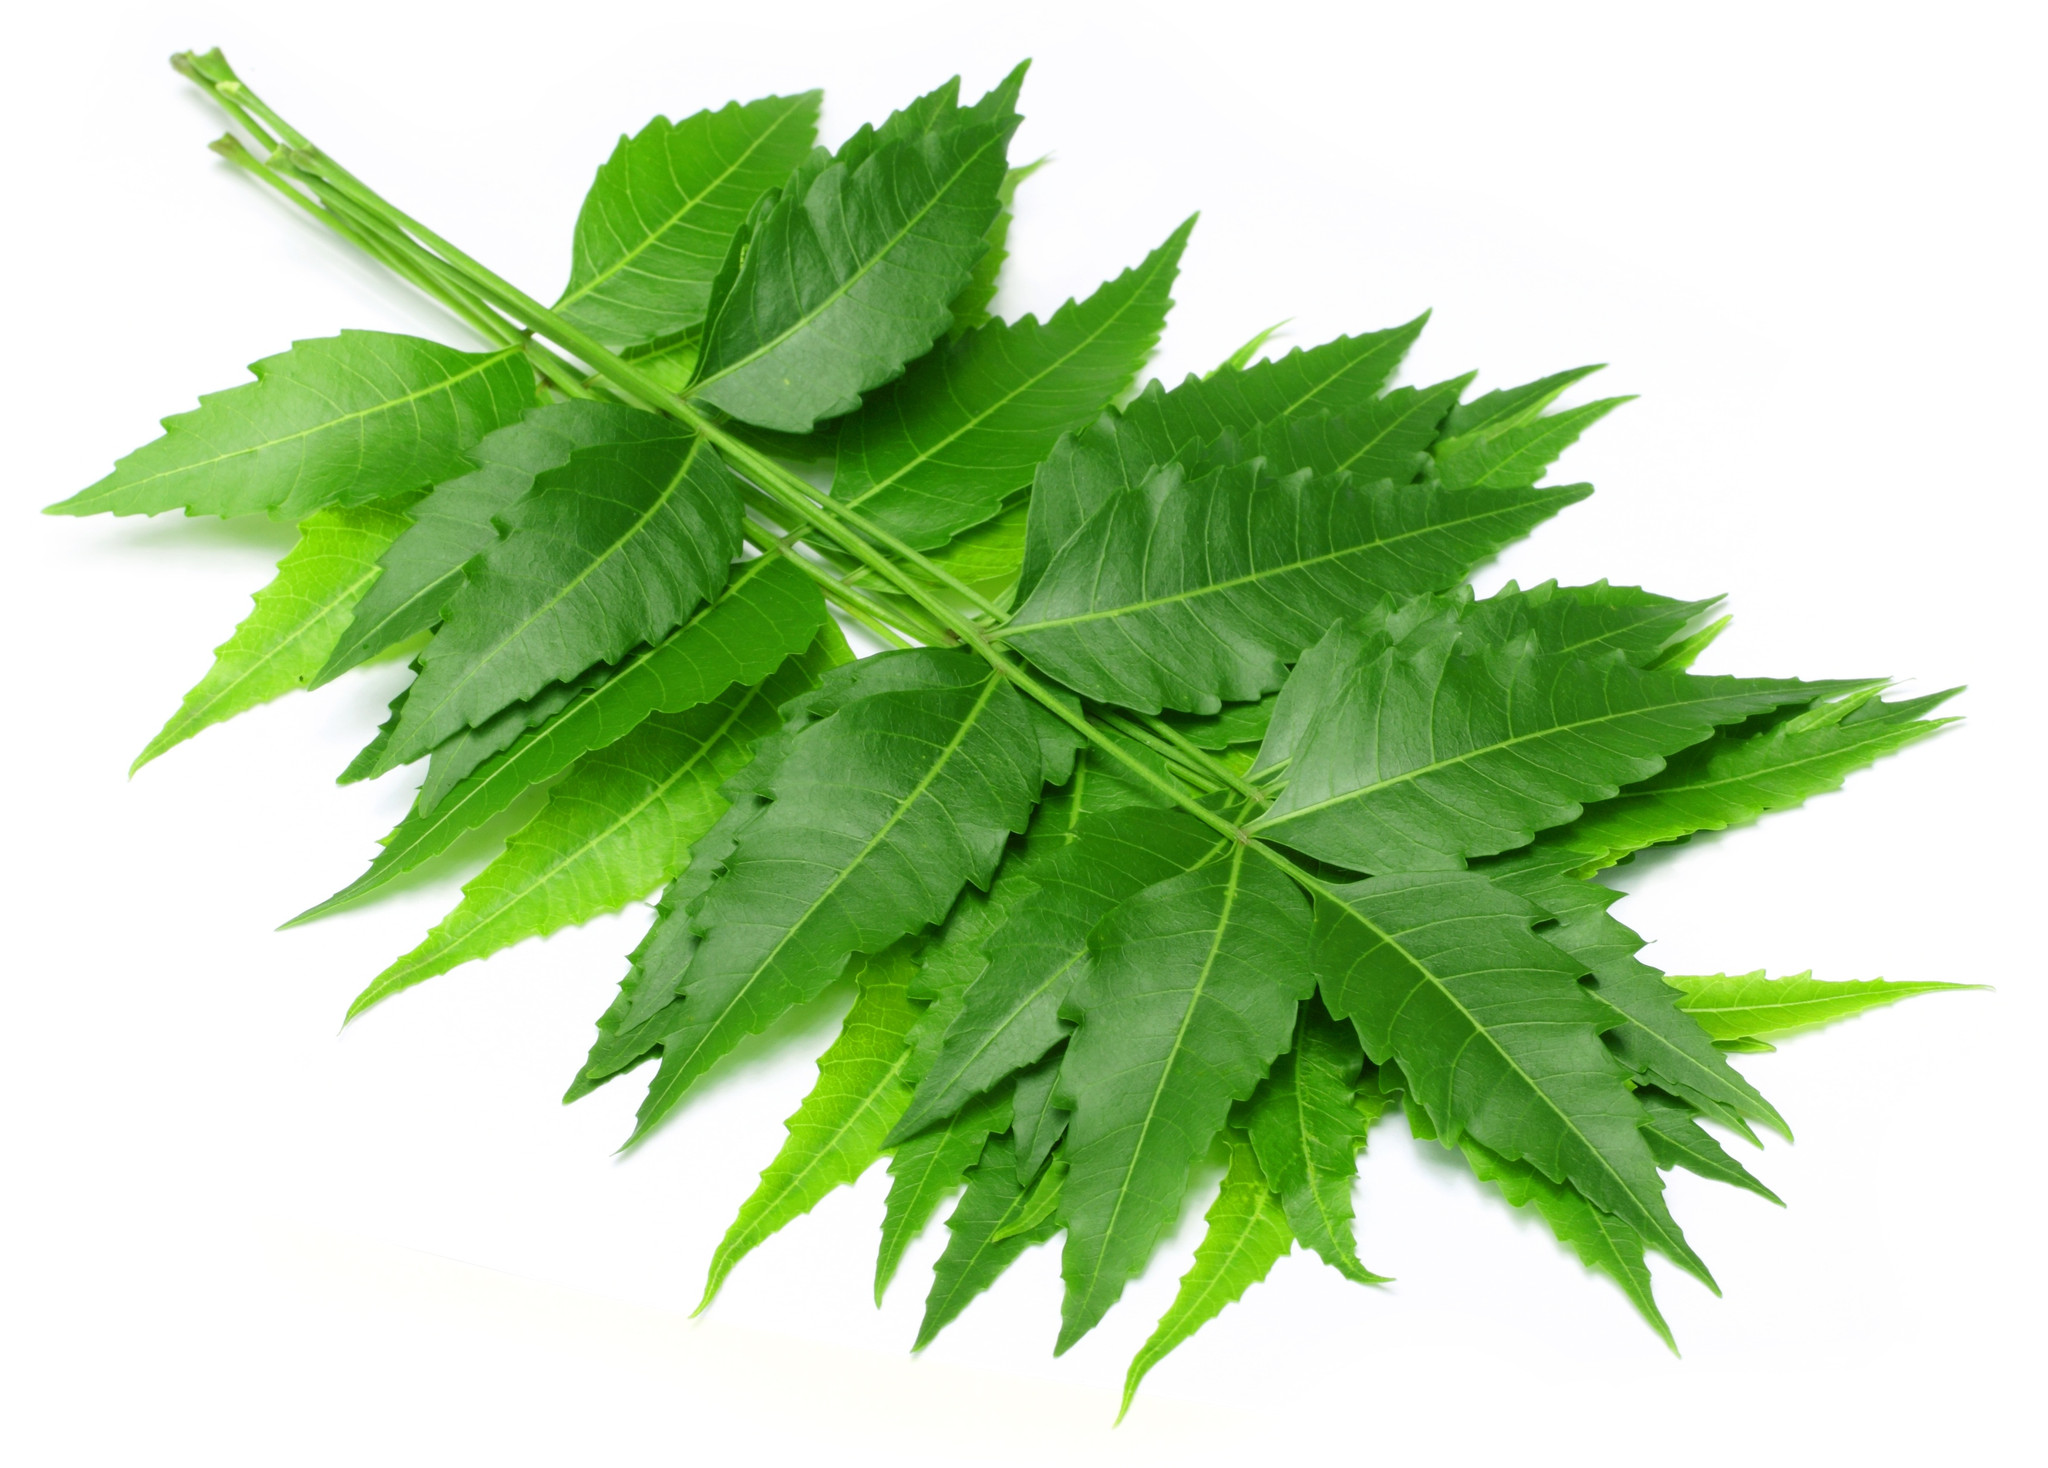 Neem leaves and its uses